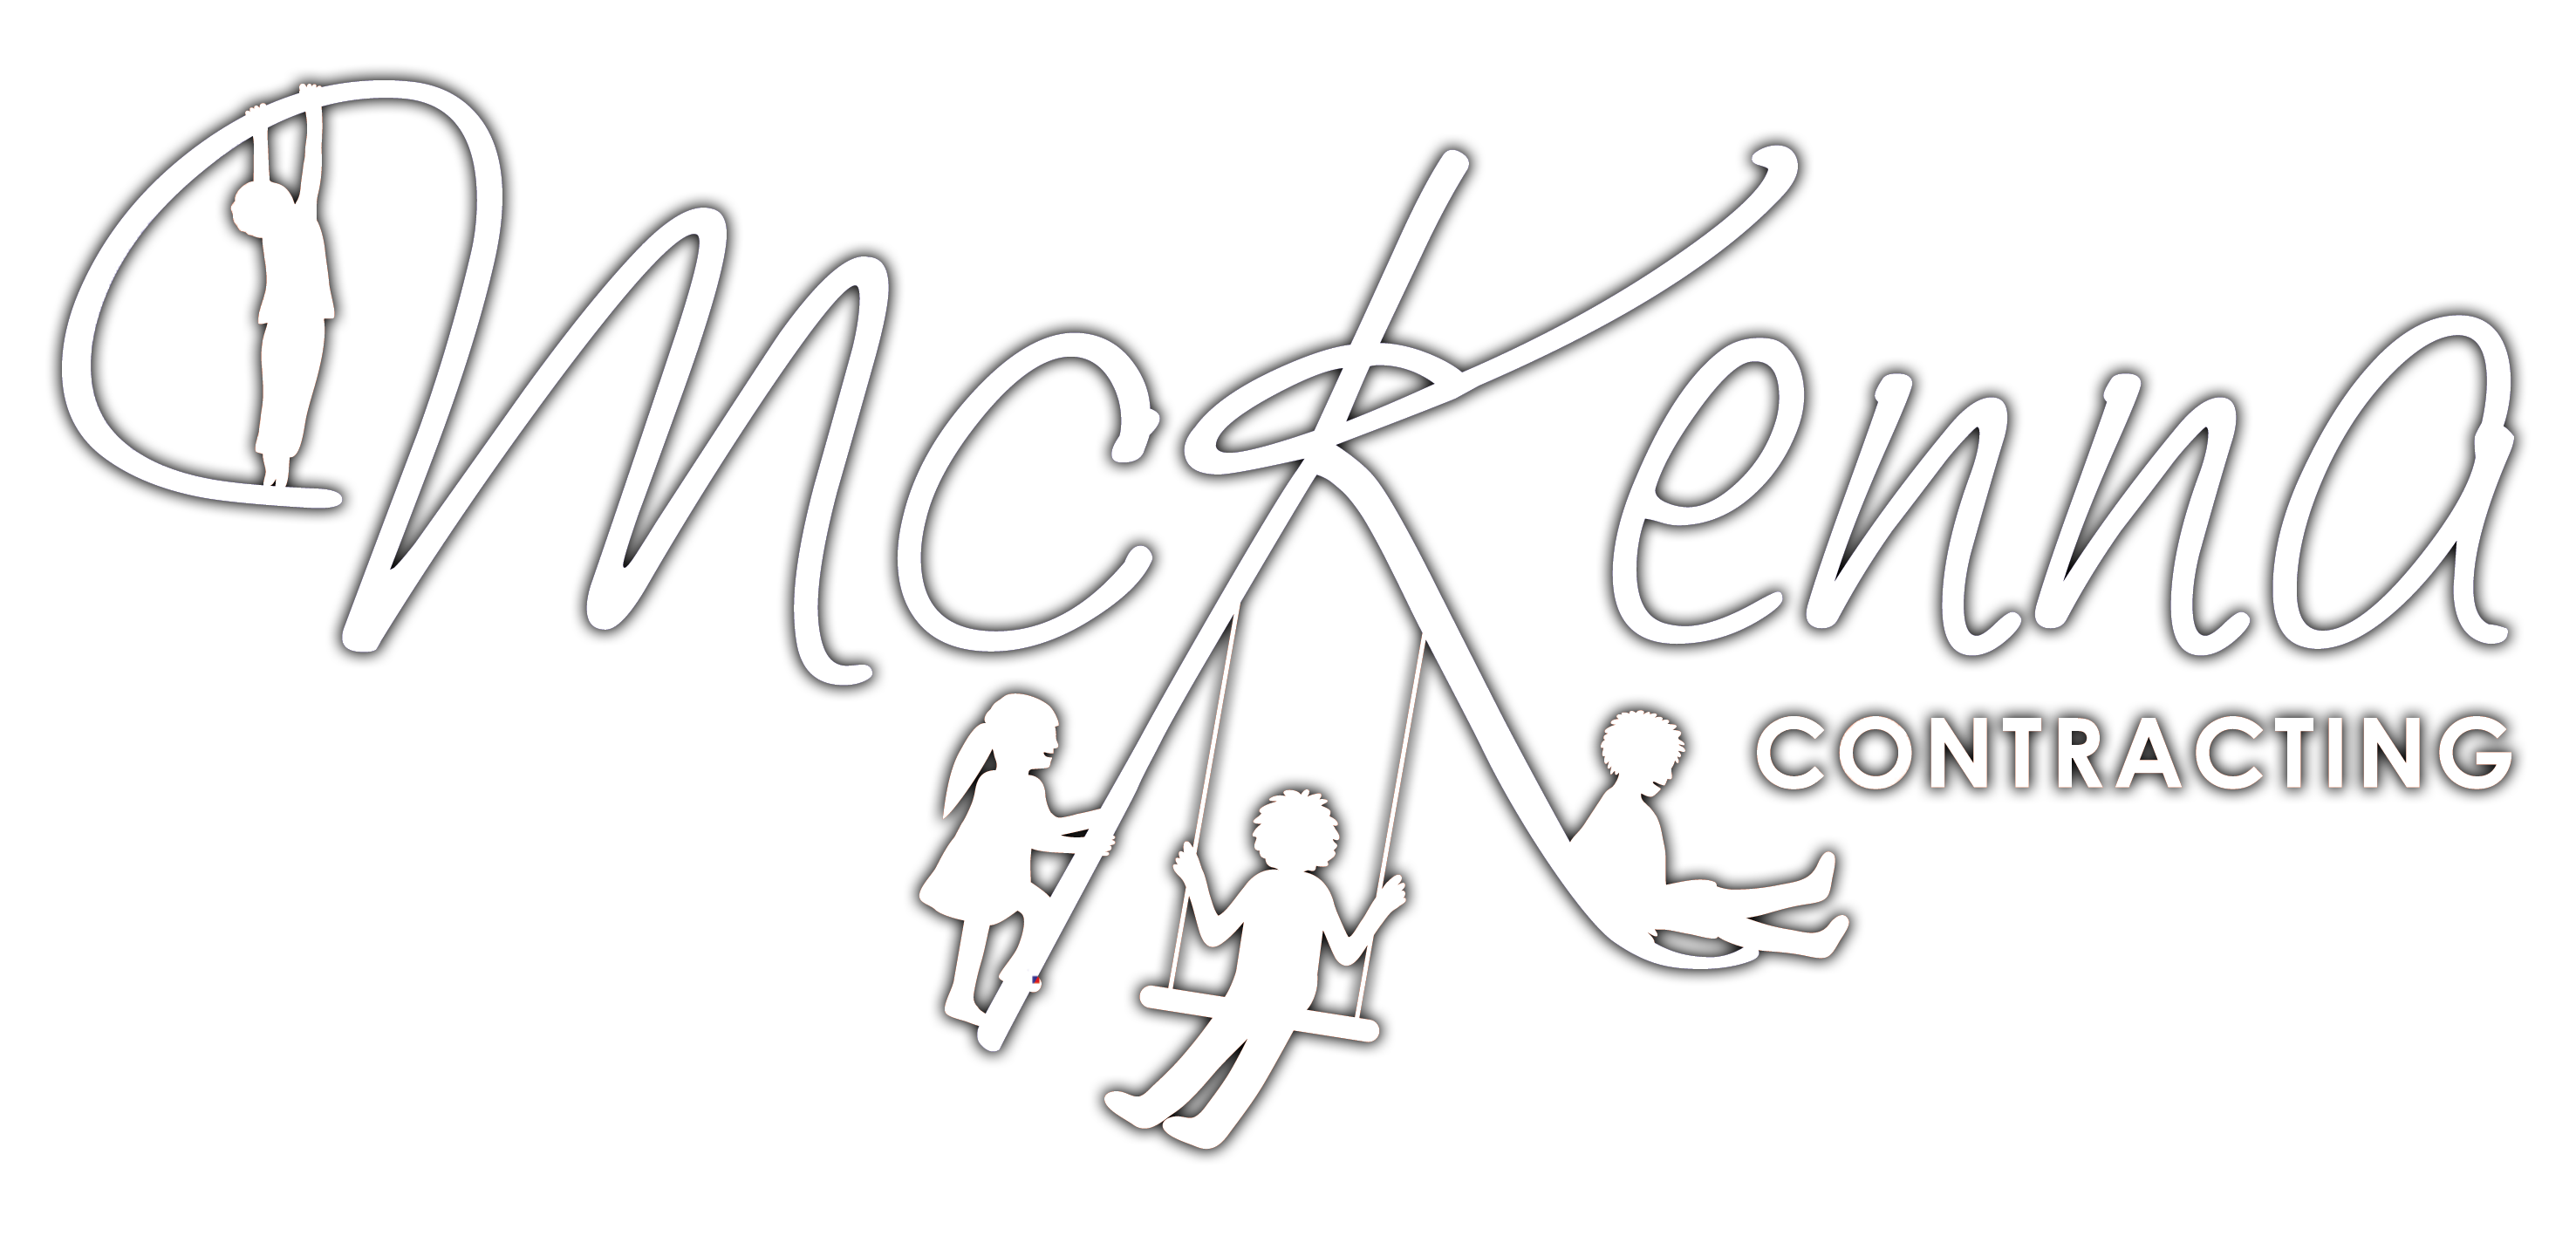 McKenna Contracting